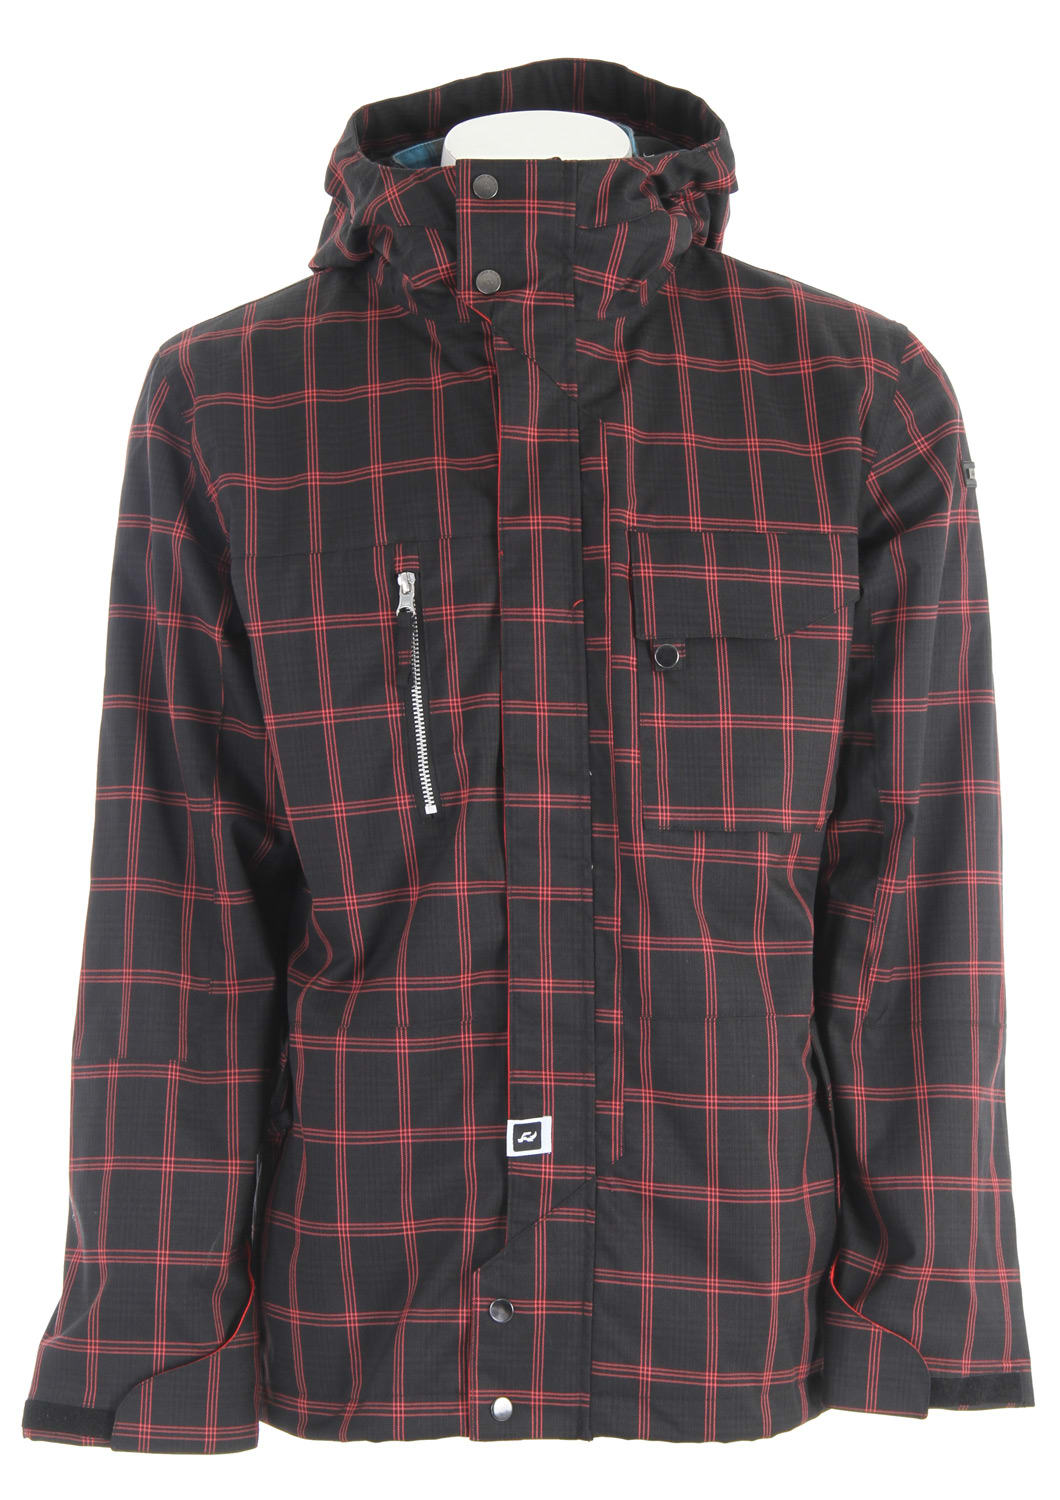 Shop for Ride Pioneer Snowboard Jacket Black Window Pane Plaid - Men's